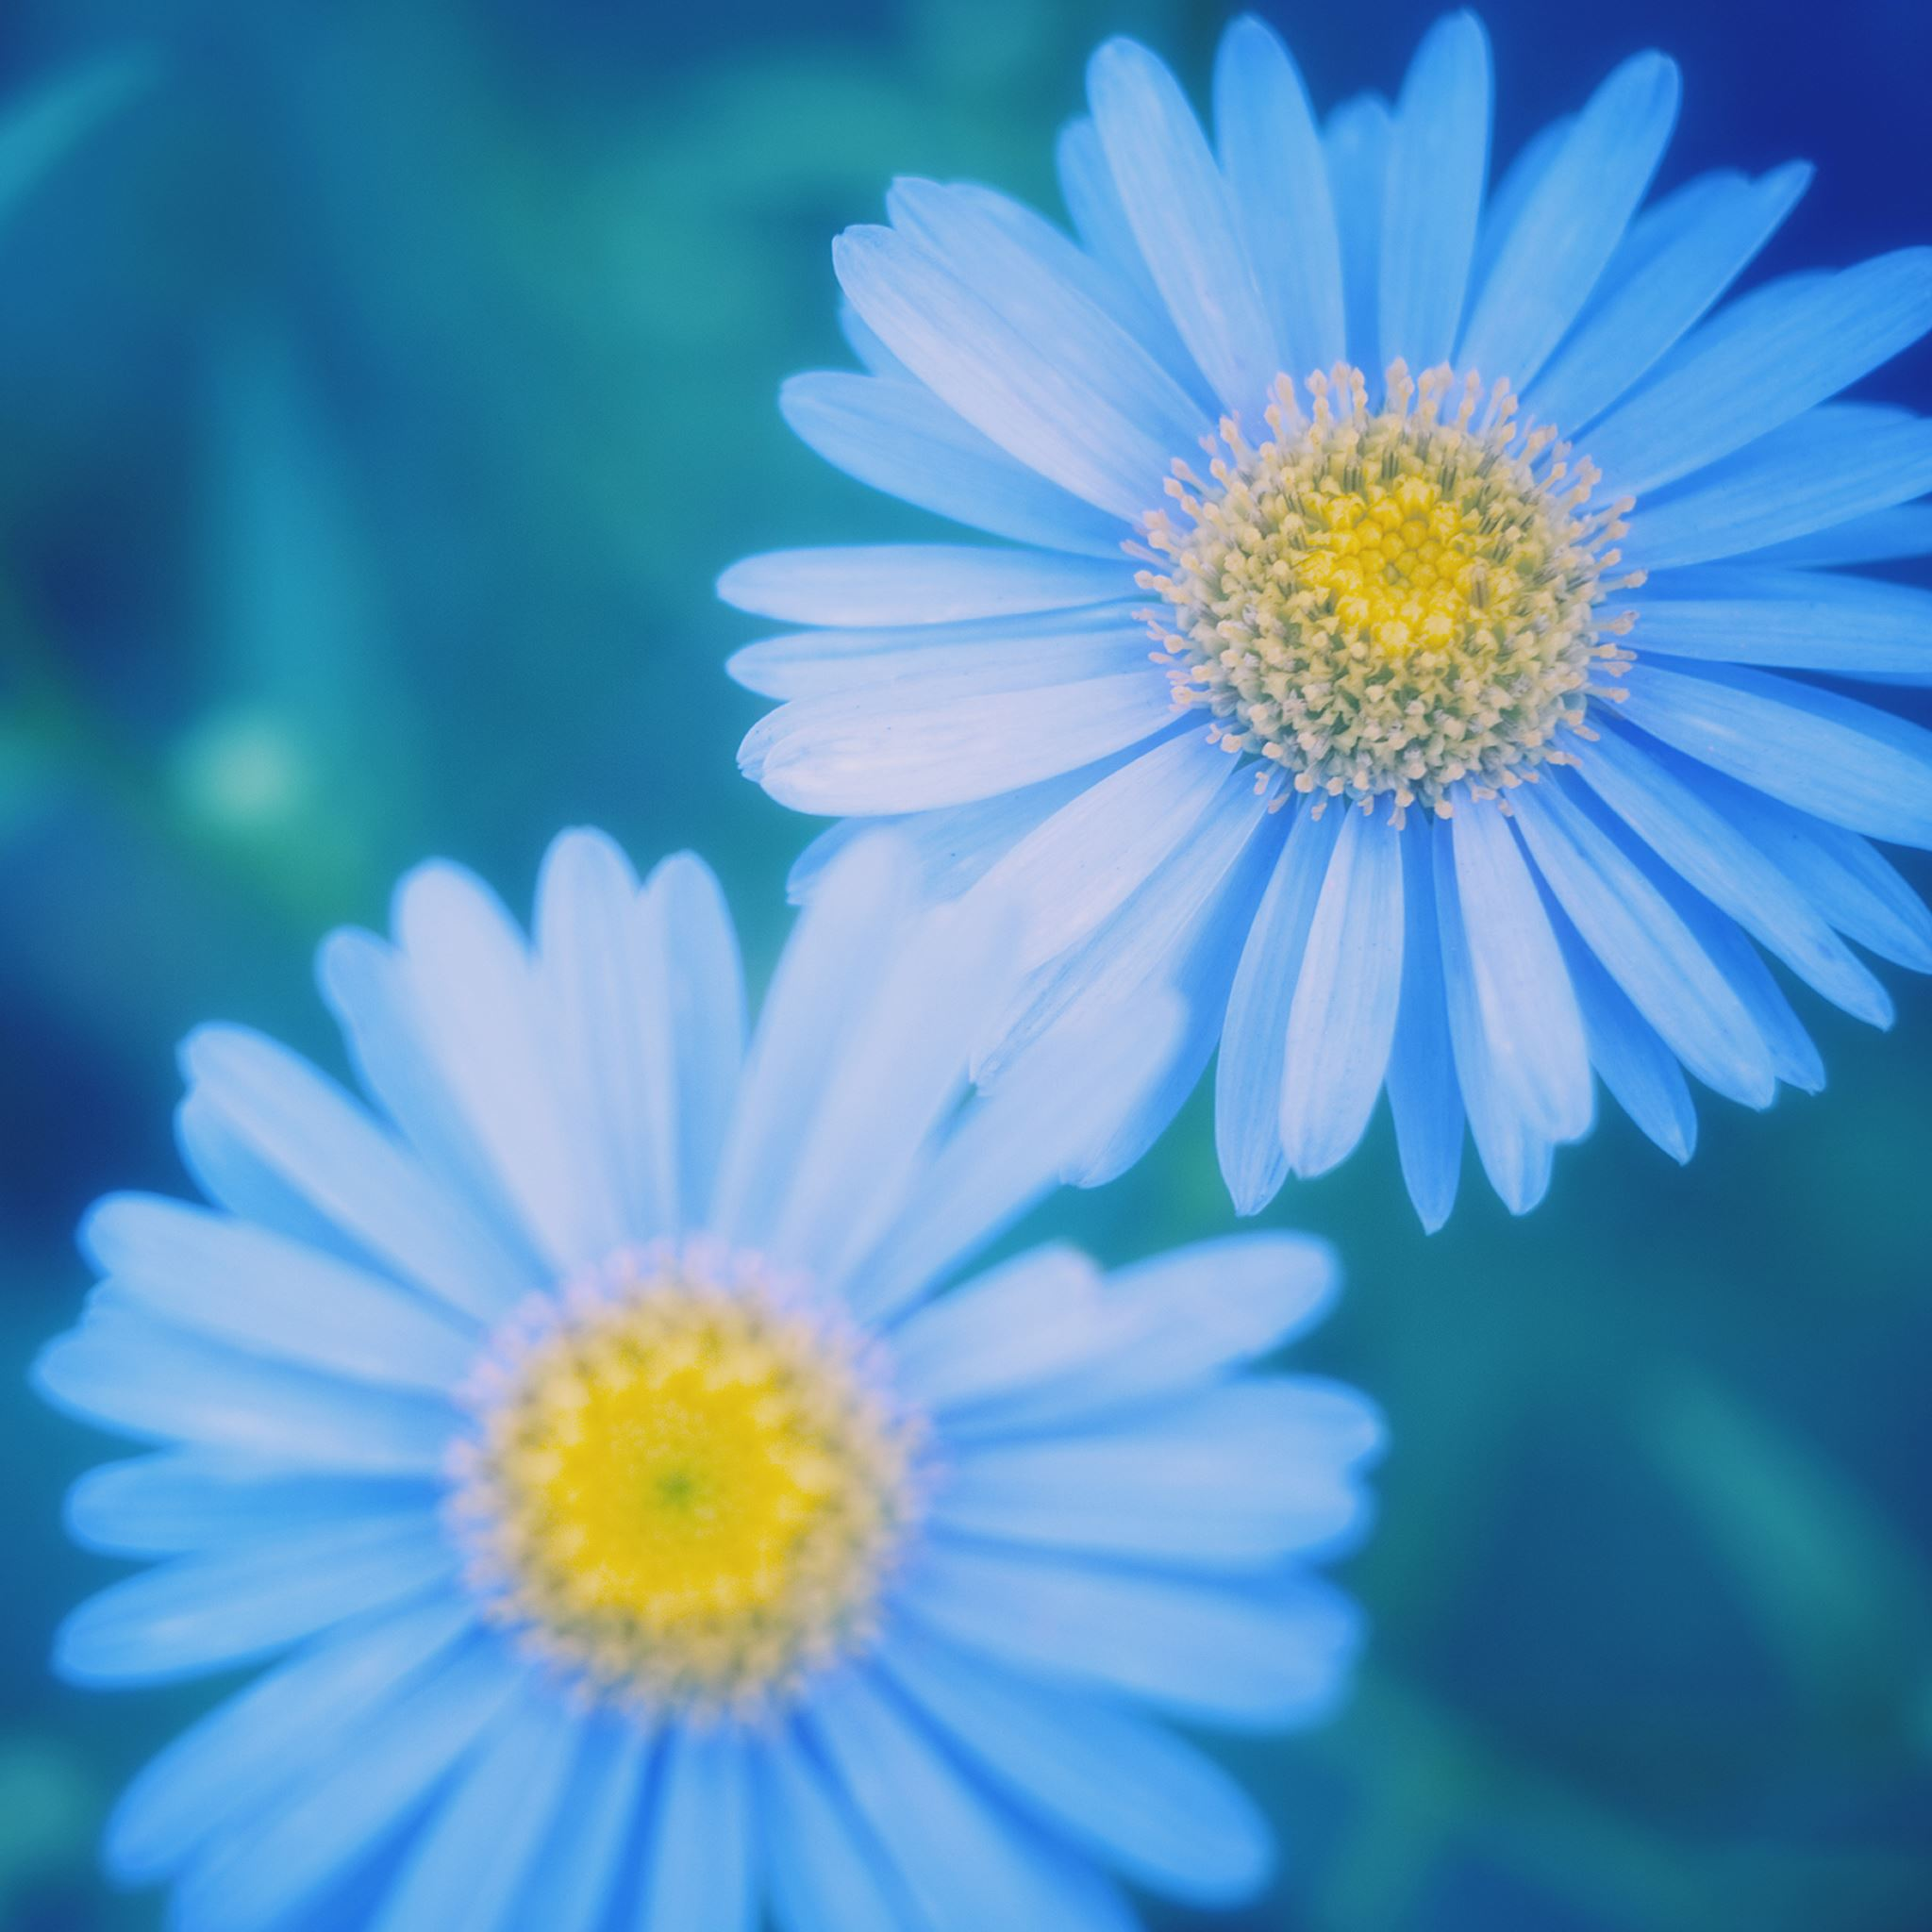 Blue Daisies iPad Air wallpaper